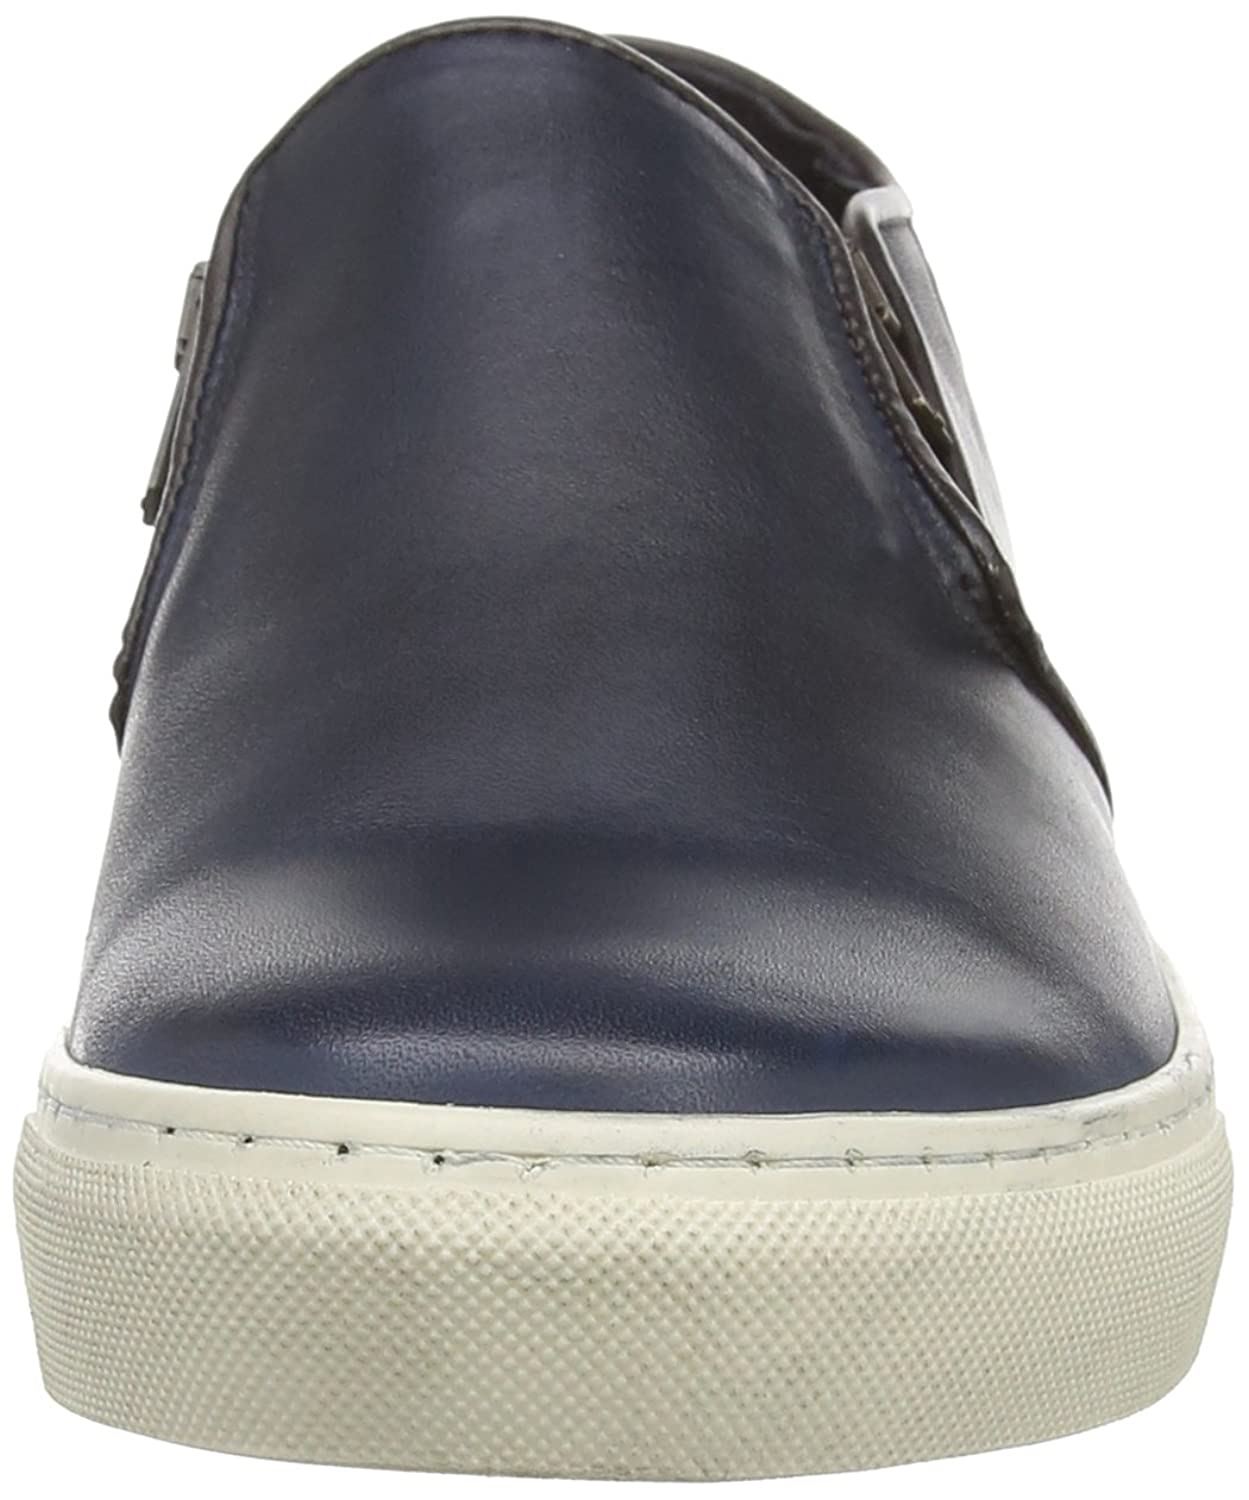 Dune Taxi Cab, Men's Loafers, Blue (Navy Leather), 11 UK (45 EU):  Amazon.co.uk: Shoes & Bags